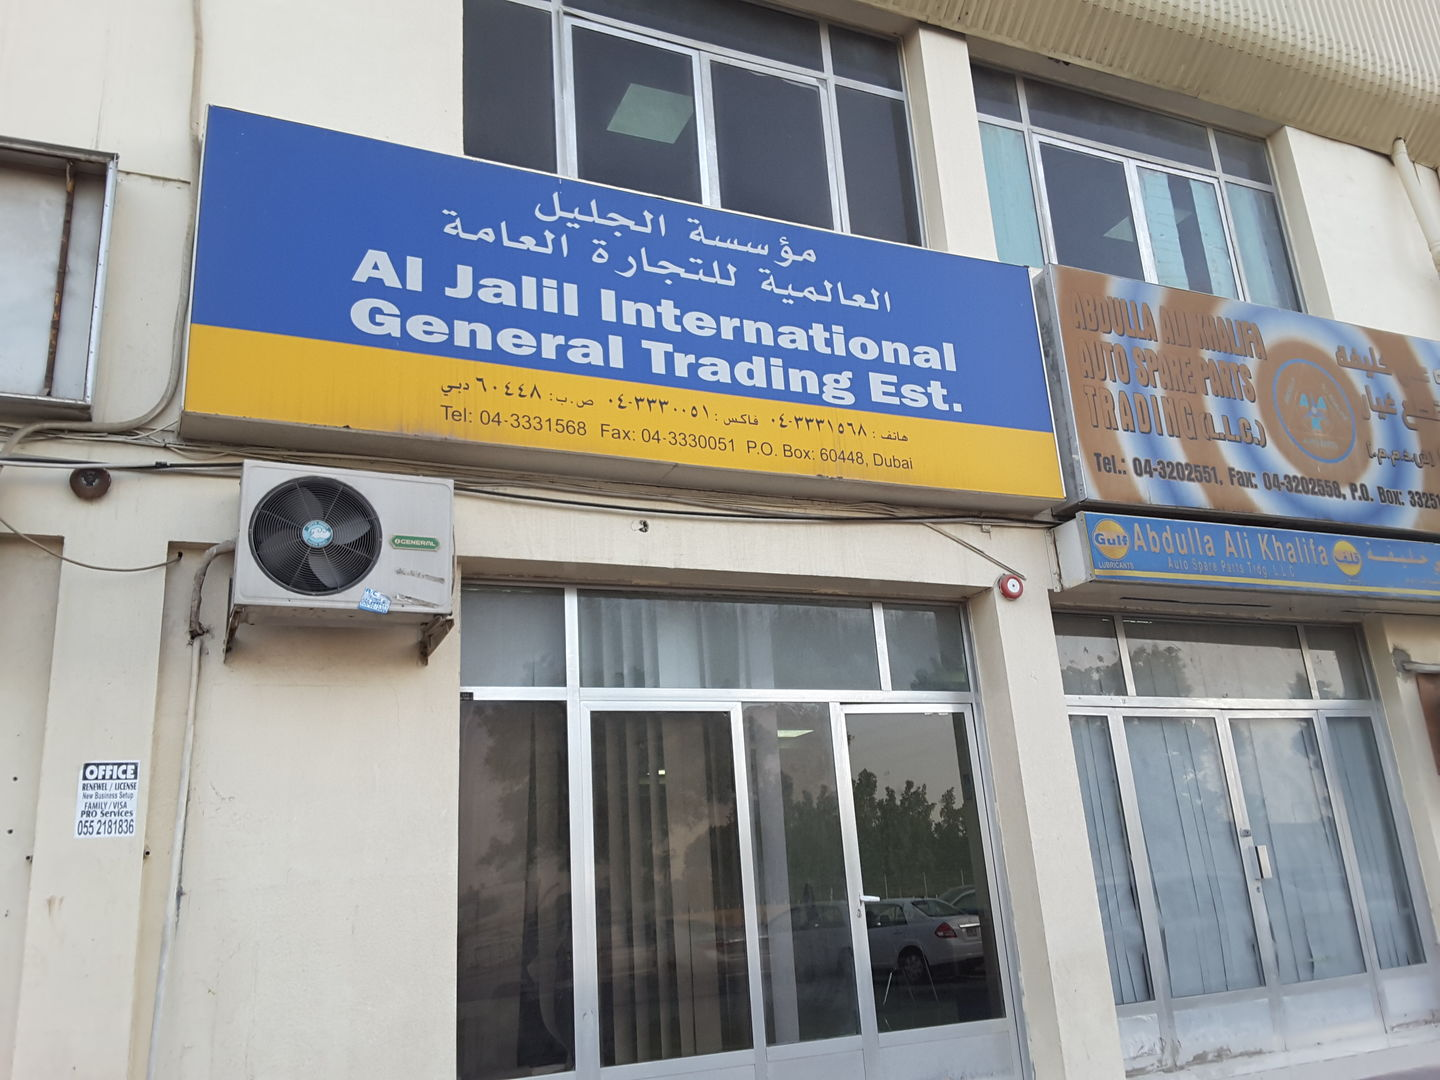 HiDubai-business-al-jalil-international-general-trading-transport-vehicle-services-auto-spare-parts-accessories-ras-al-khor-industrial-2-dubai-2